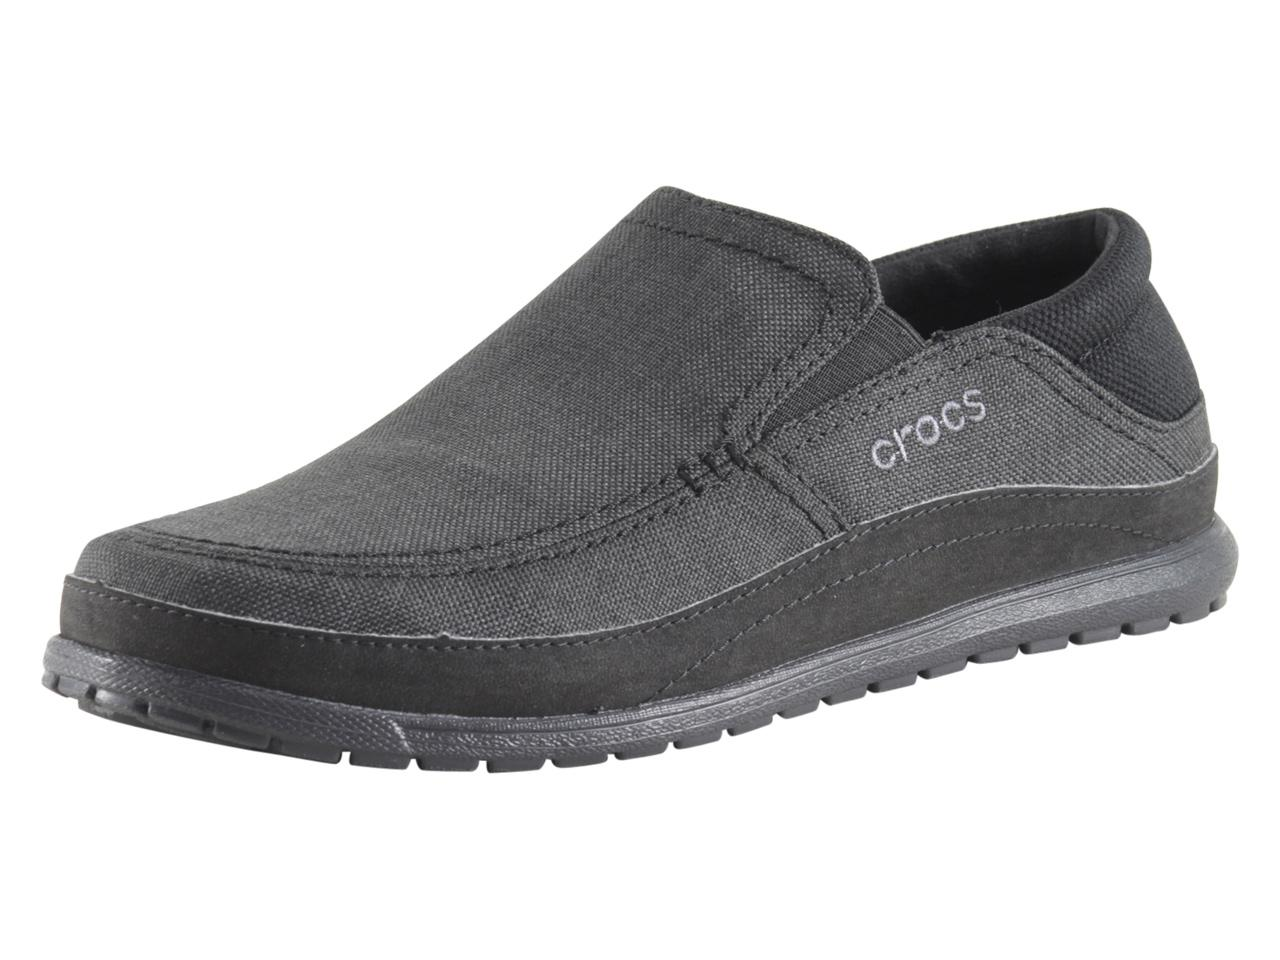 b53f82e79 Crocs Men s Santa Cruz Playa Slip-On Loafers Shoes by Crocs